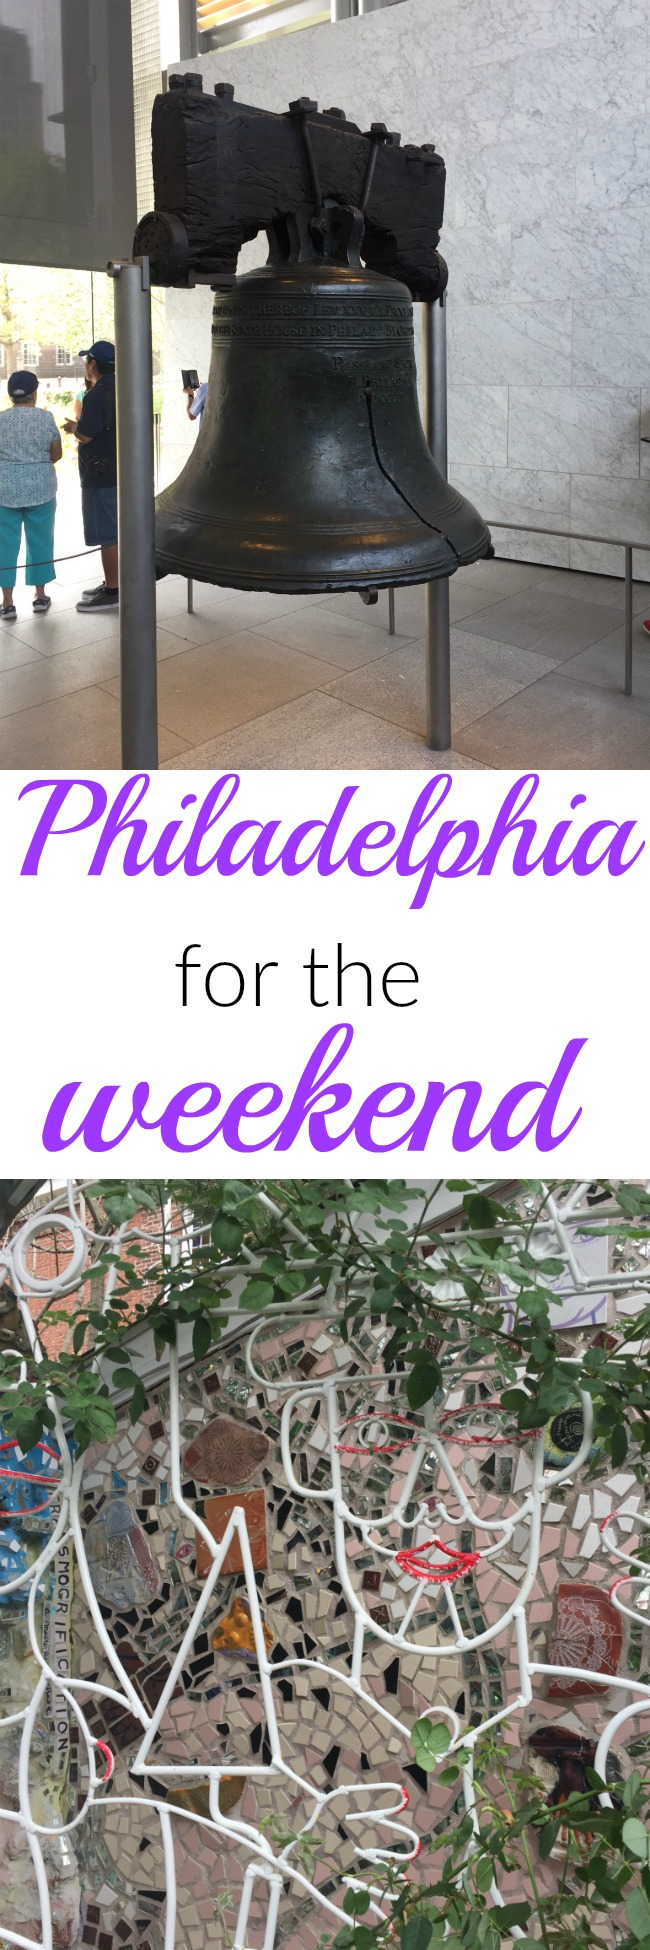 Lots to do during a weekend in Philadelphia. Check out this post for ideas on where to eat, historic sites to visit, and places to see amazing art. www.cookingismessy.com